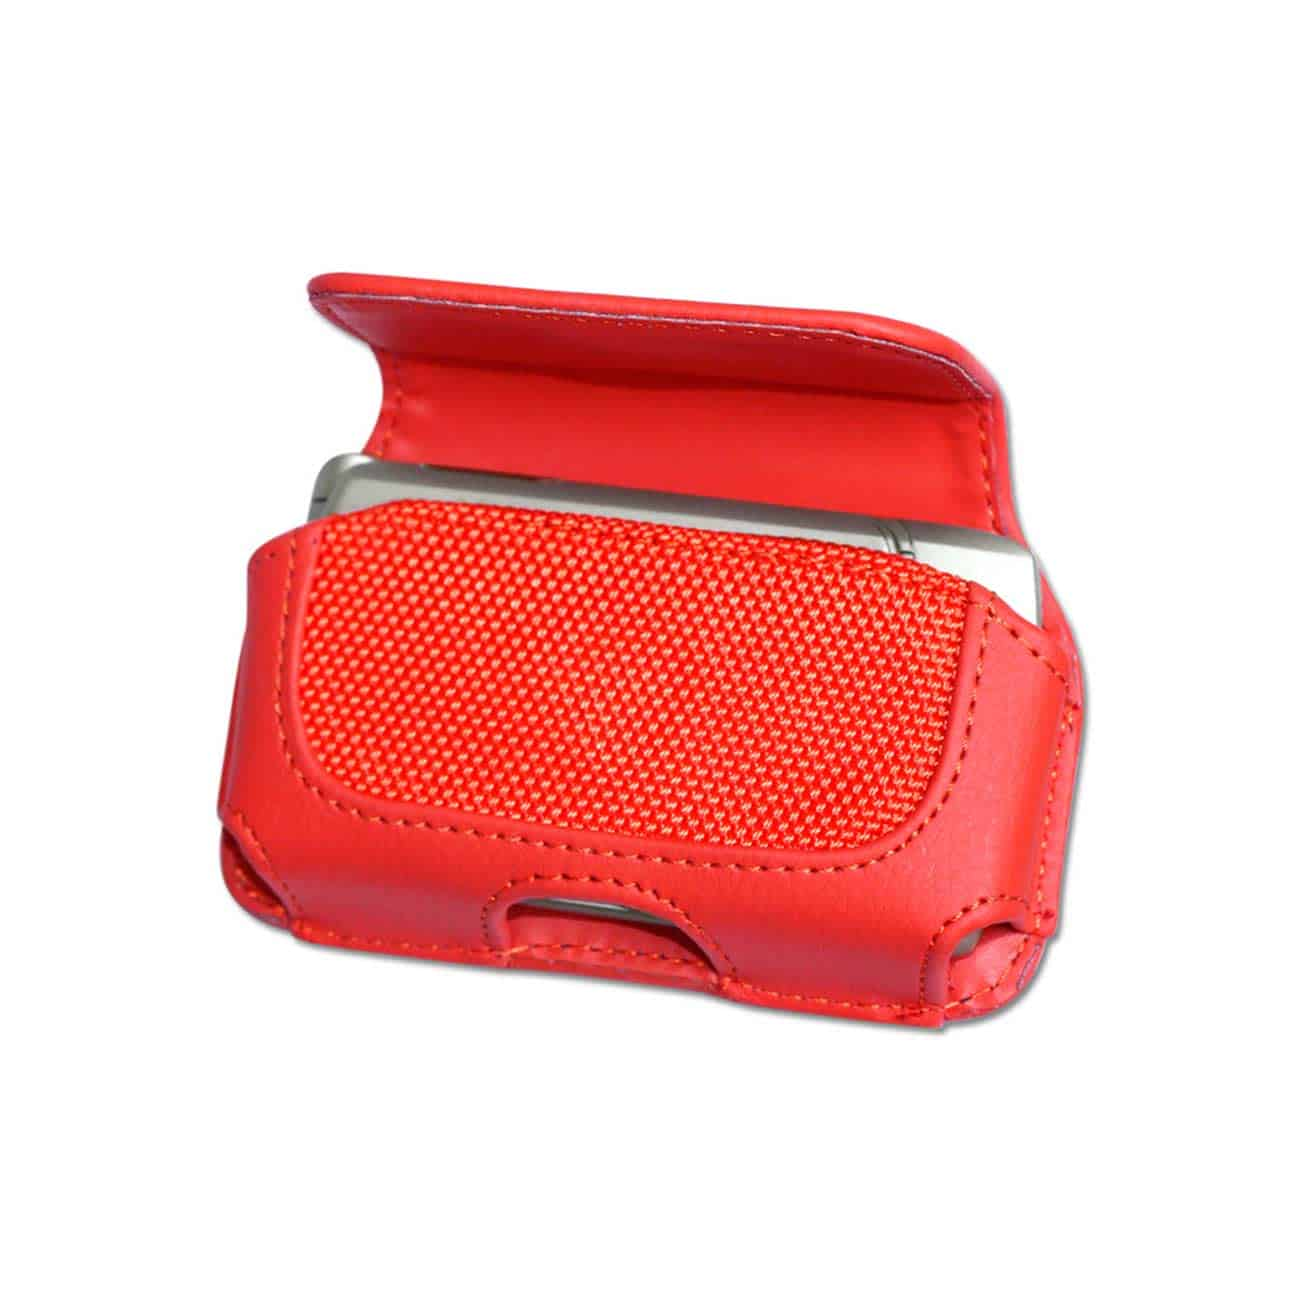 HORIZONTAL POUCH HP11A MOTOROLA V3 RED 4X0.5X2.1 INCHES